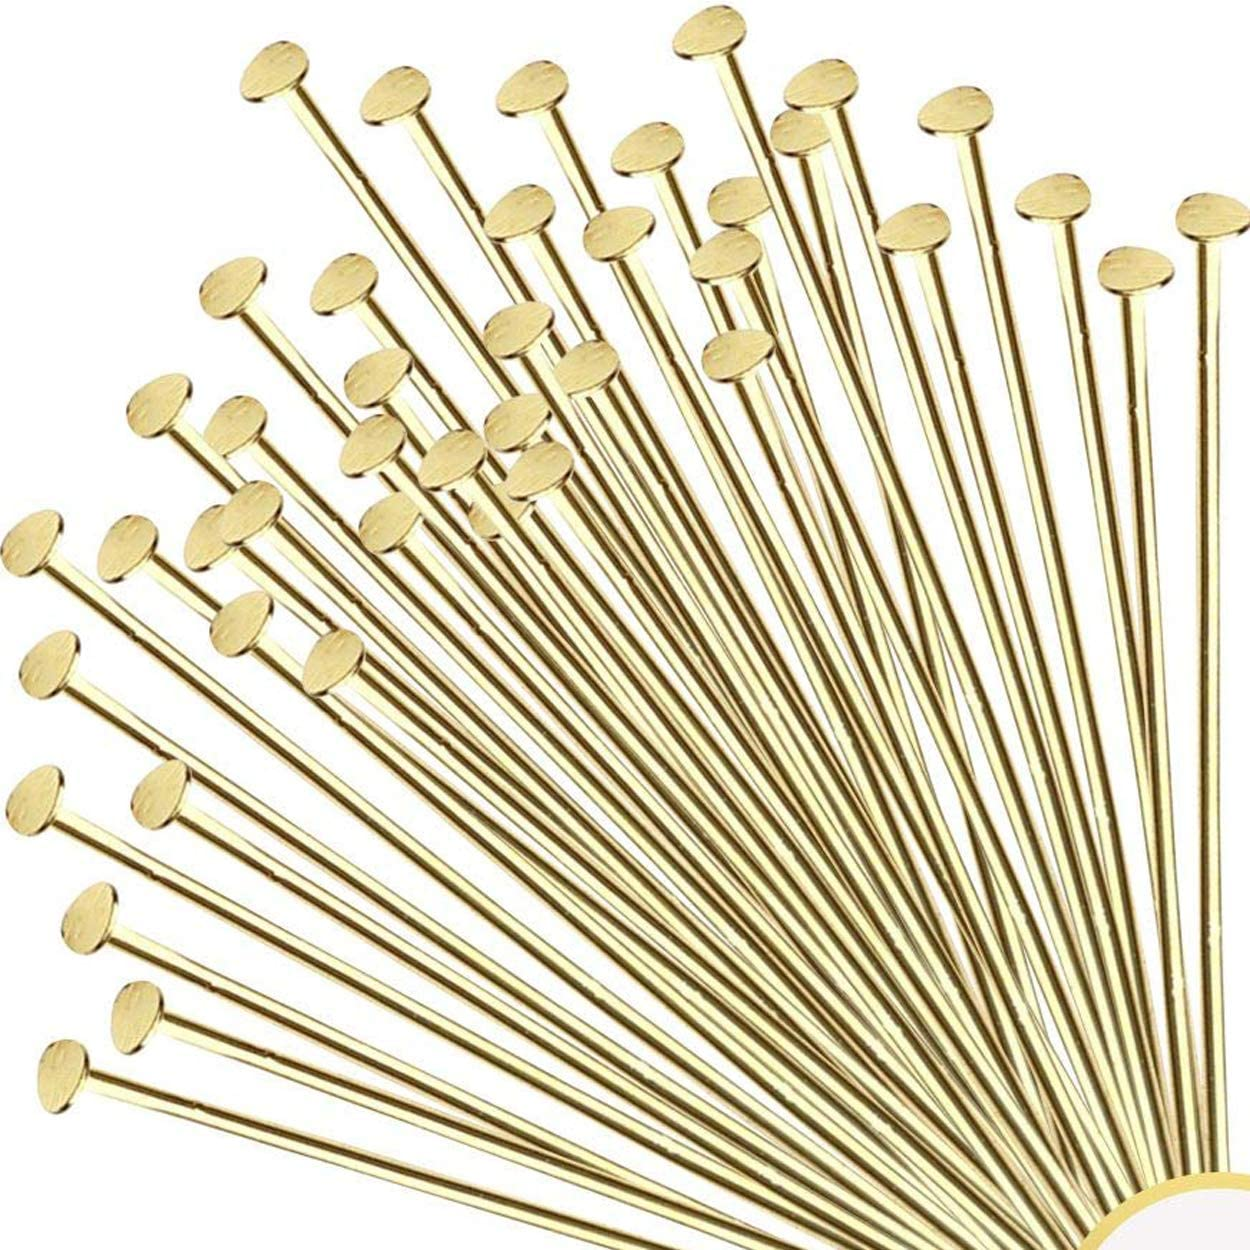 2 inch 22 Gauge 200pc Gold Solid Brass Head Ball pins for Jewelry Making- Nickel Free Hypoallergenic- 50mm